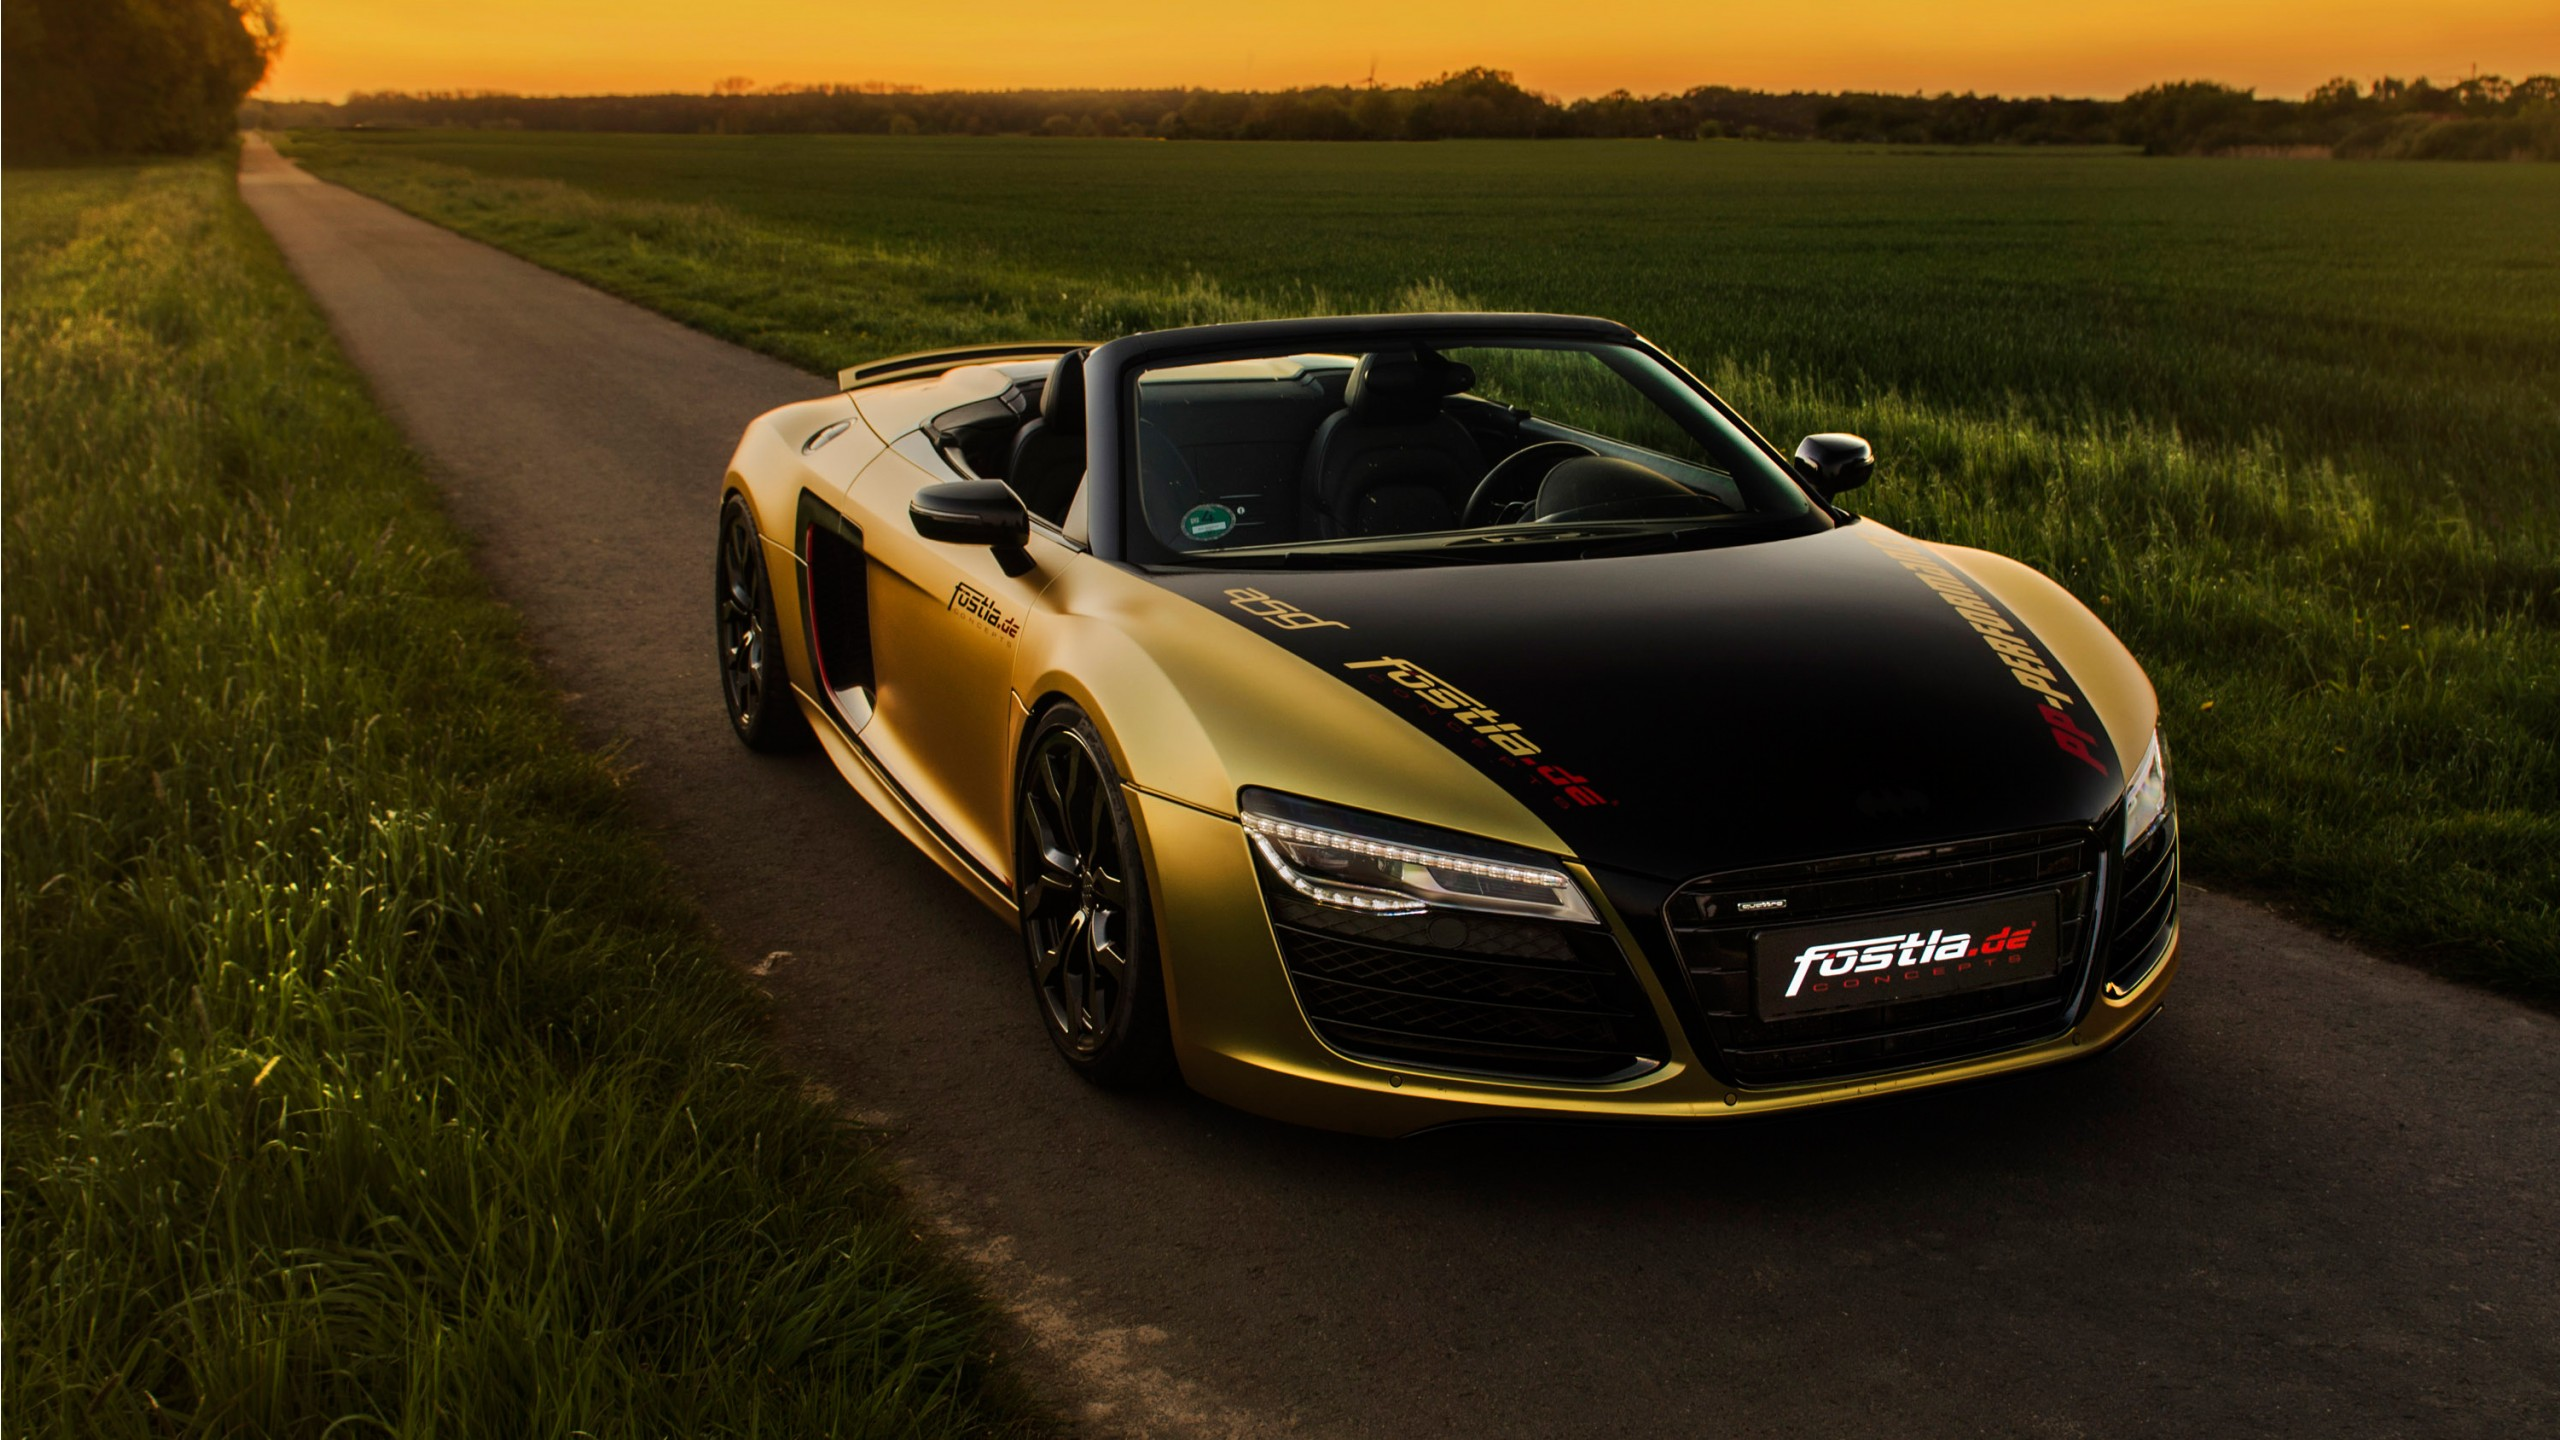 2017 Fostla De Audi R8 V10 Spyder Wallpaper Hd Car